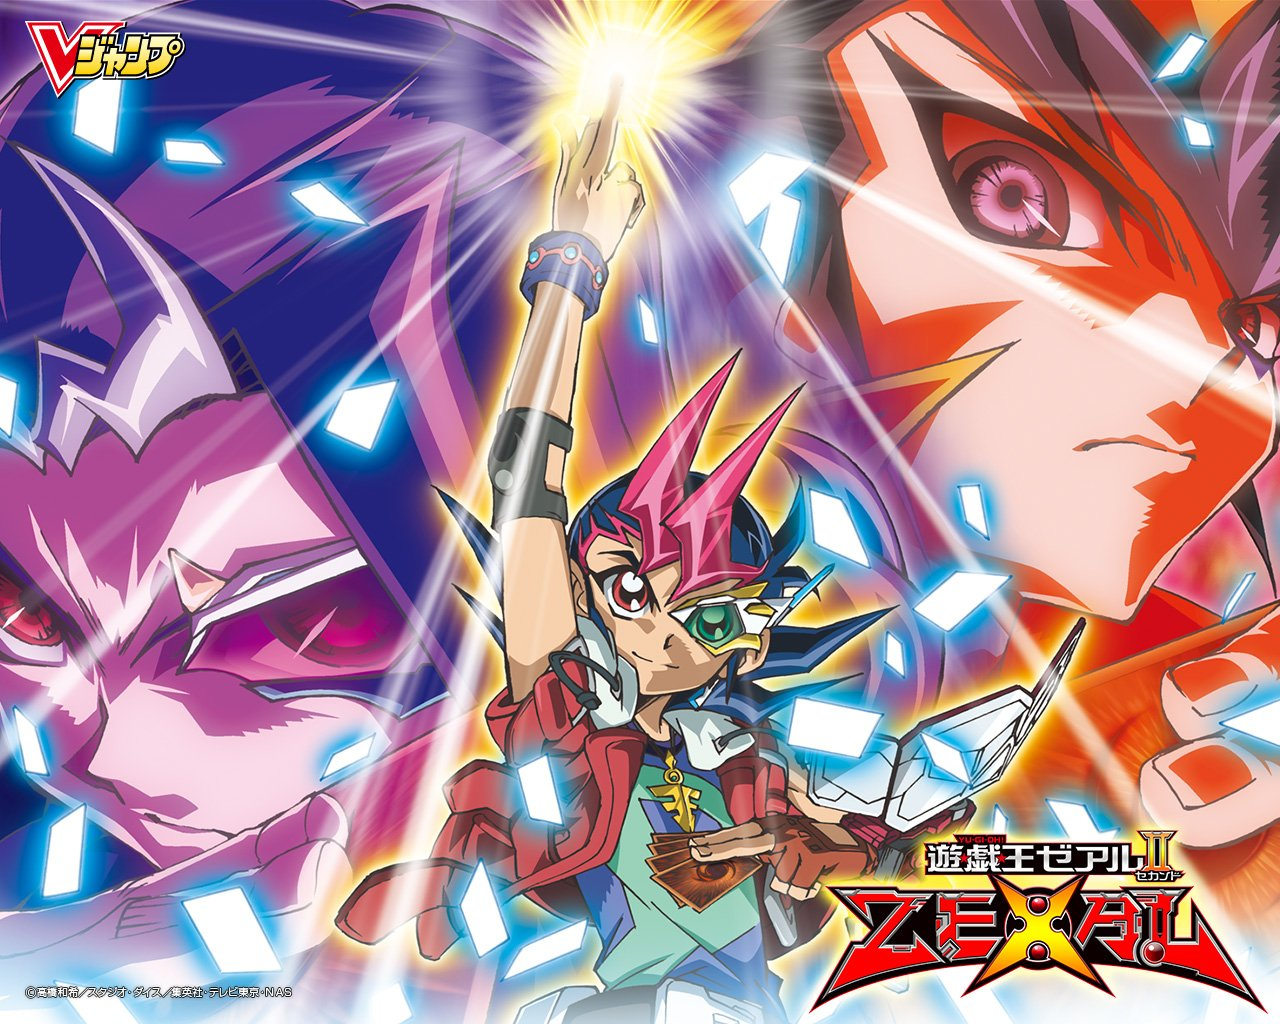 Hd Wallpaper Yu Gi Oh Zexal Background 1249305 Hd Wallpaper